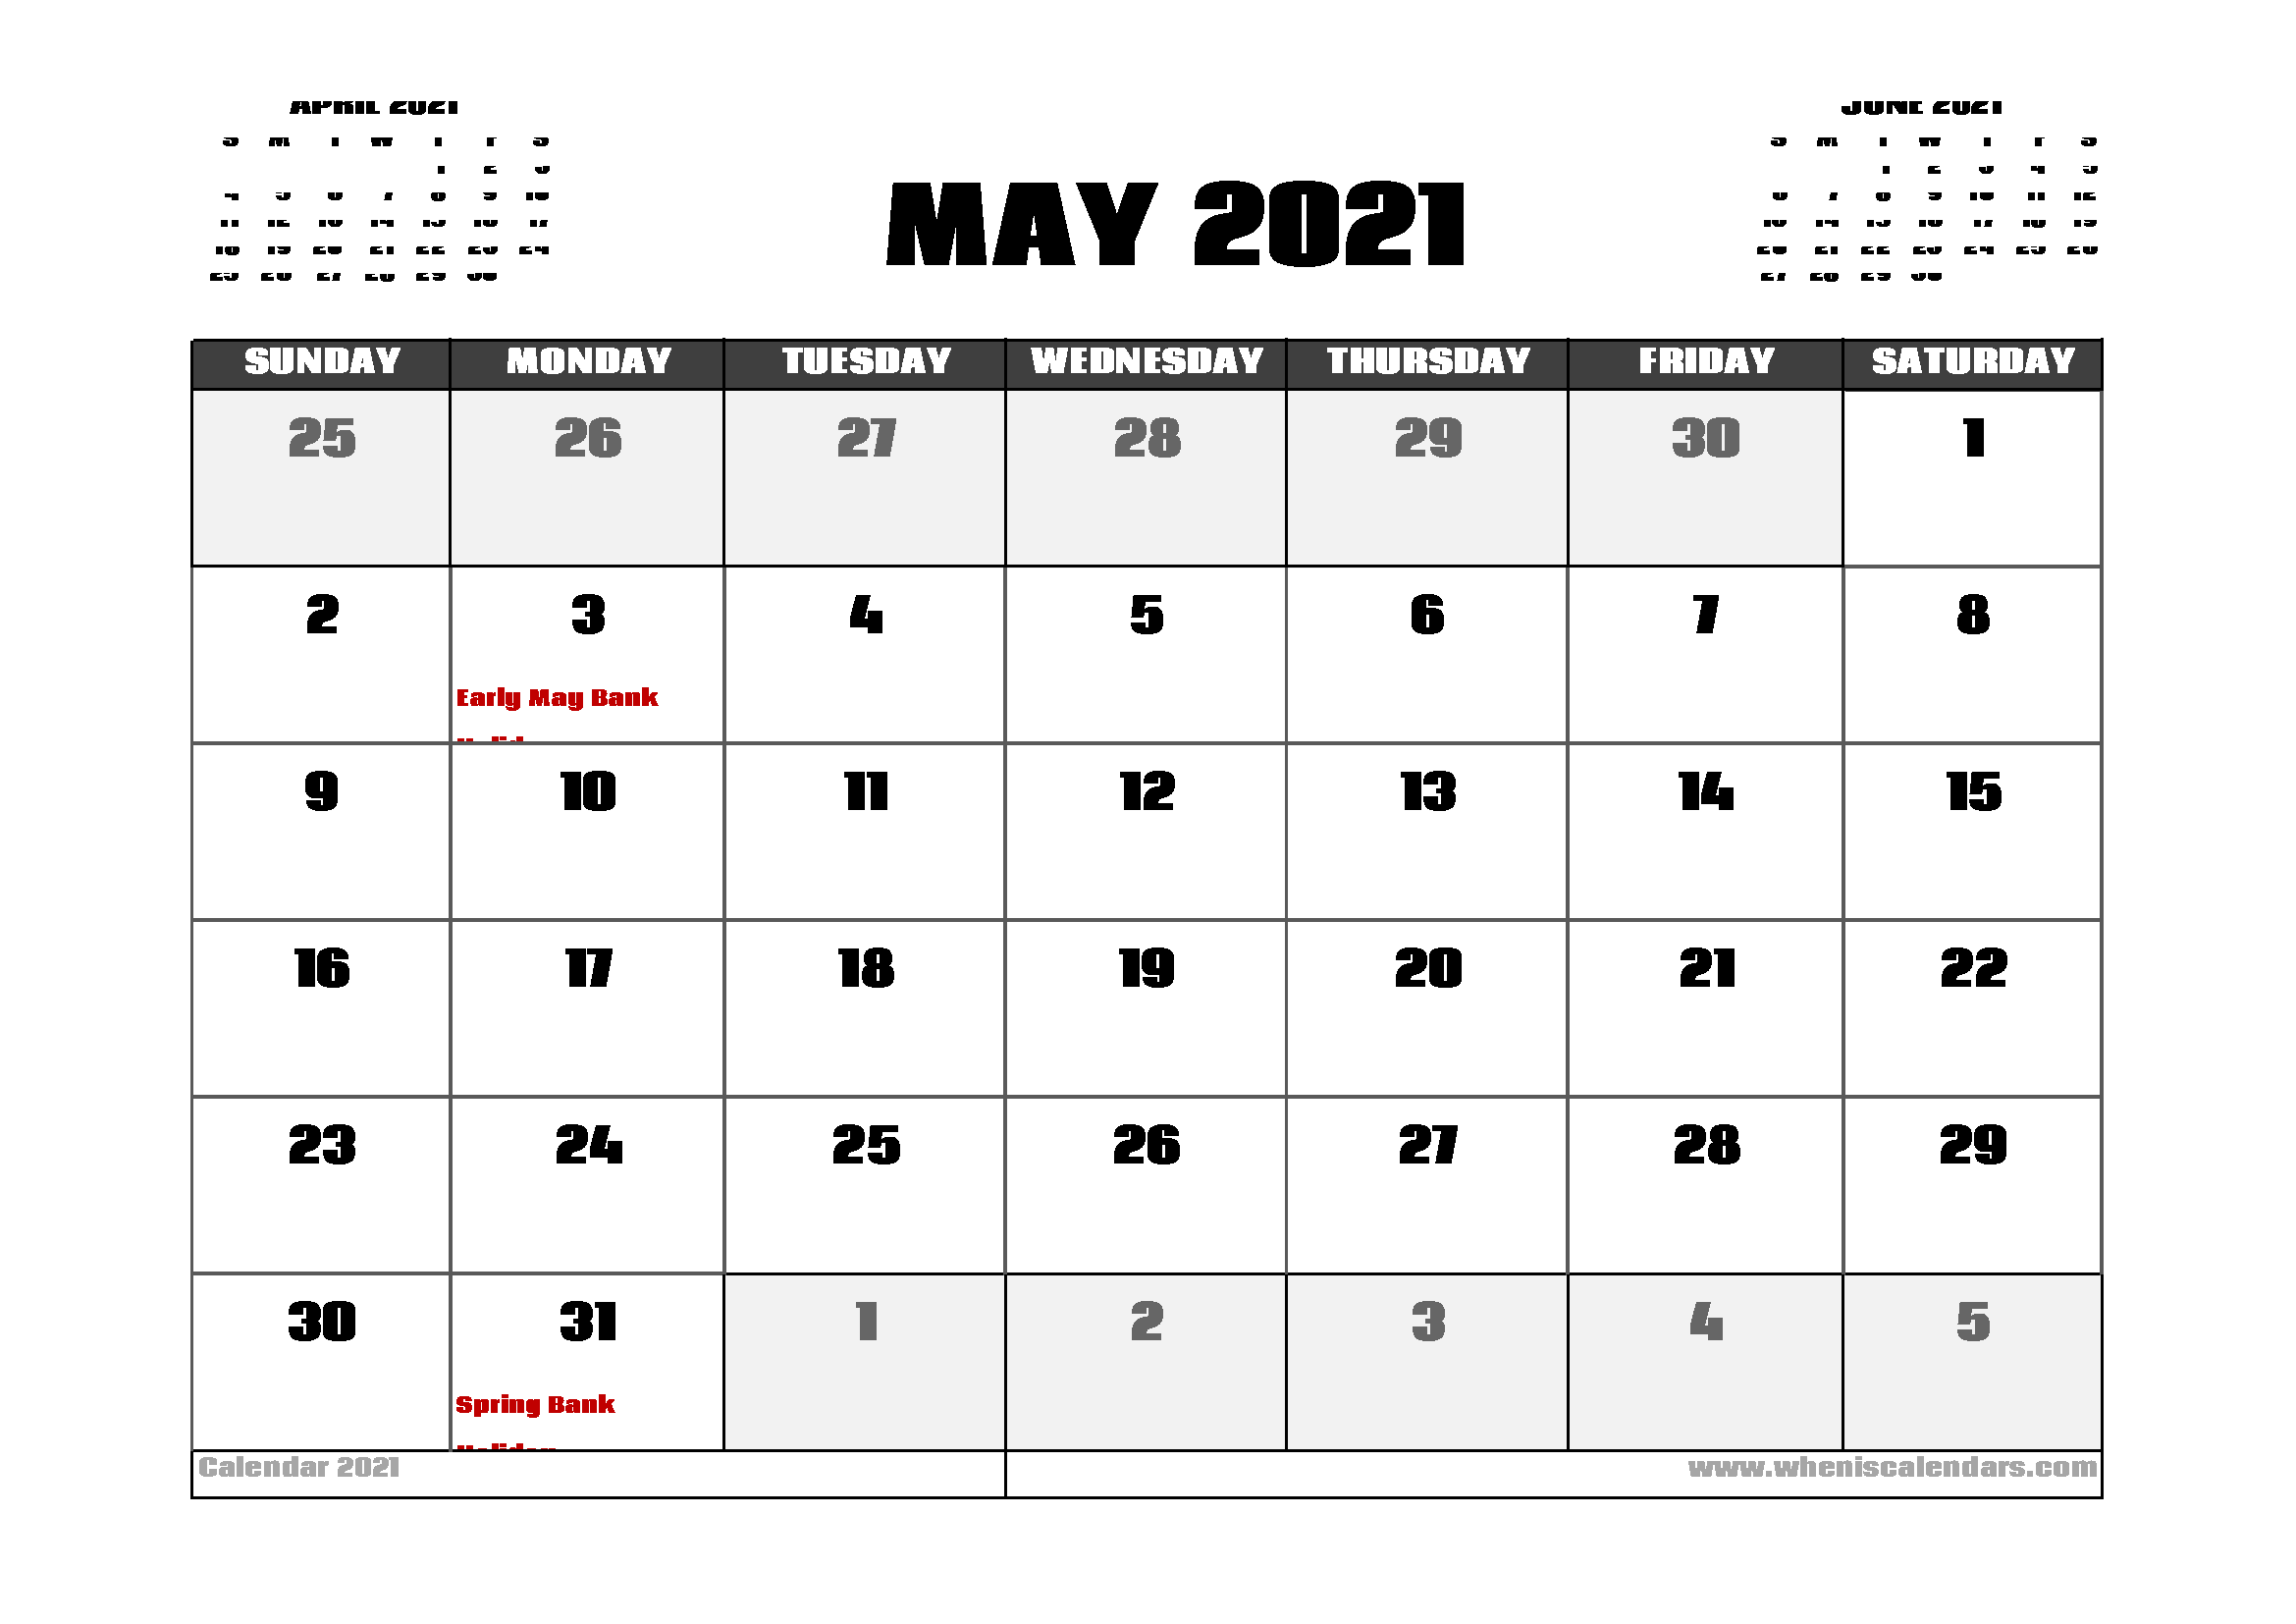 May 2021 Calendar Uk With Holidays In 2020 Calendar Uk 2021 Calendar Holiday Images